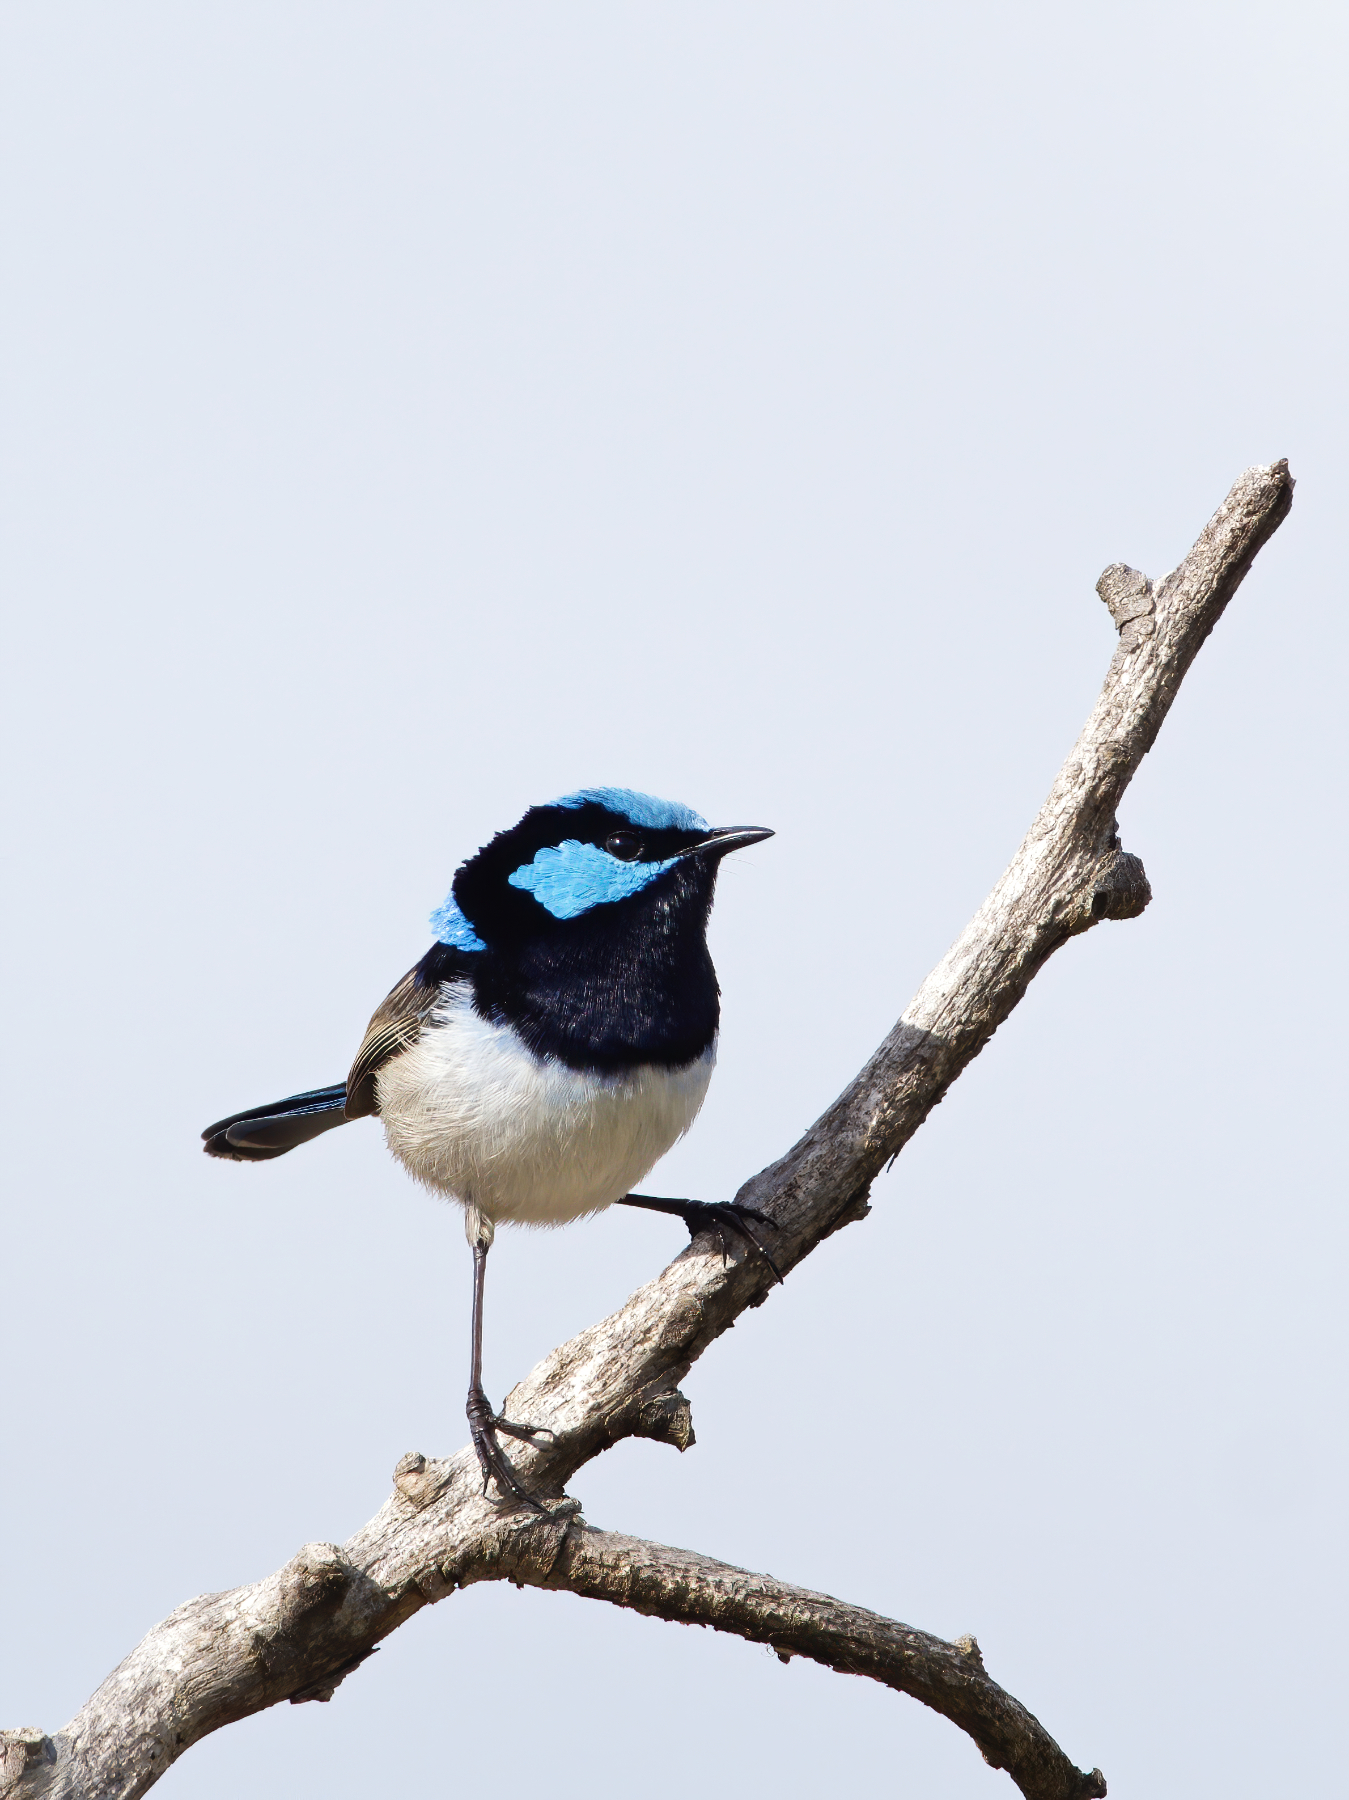 Superb Fairy-wren (Image ID 40857)